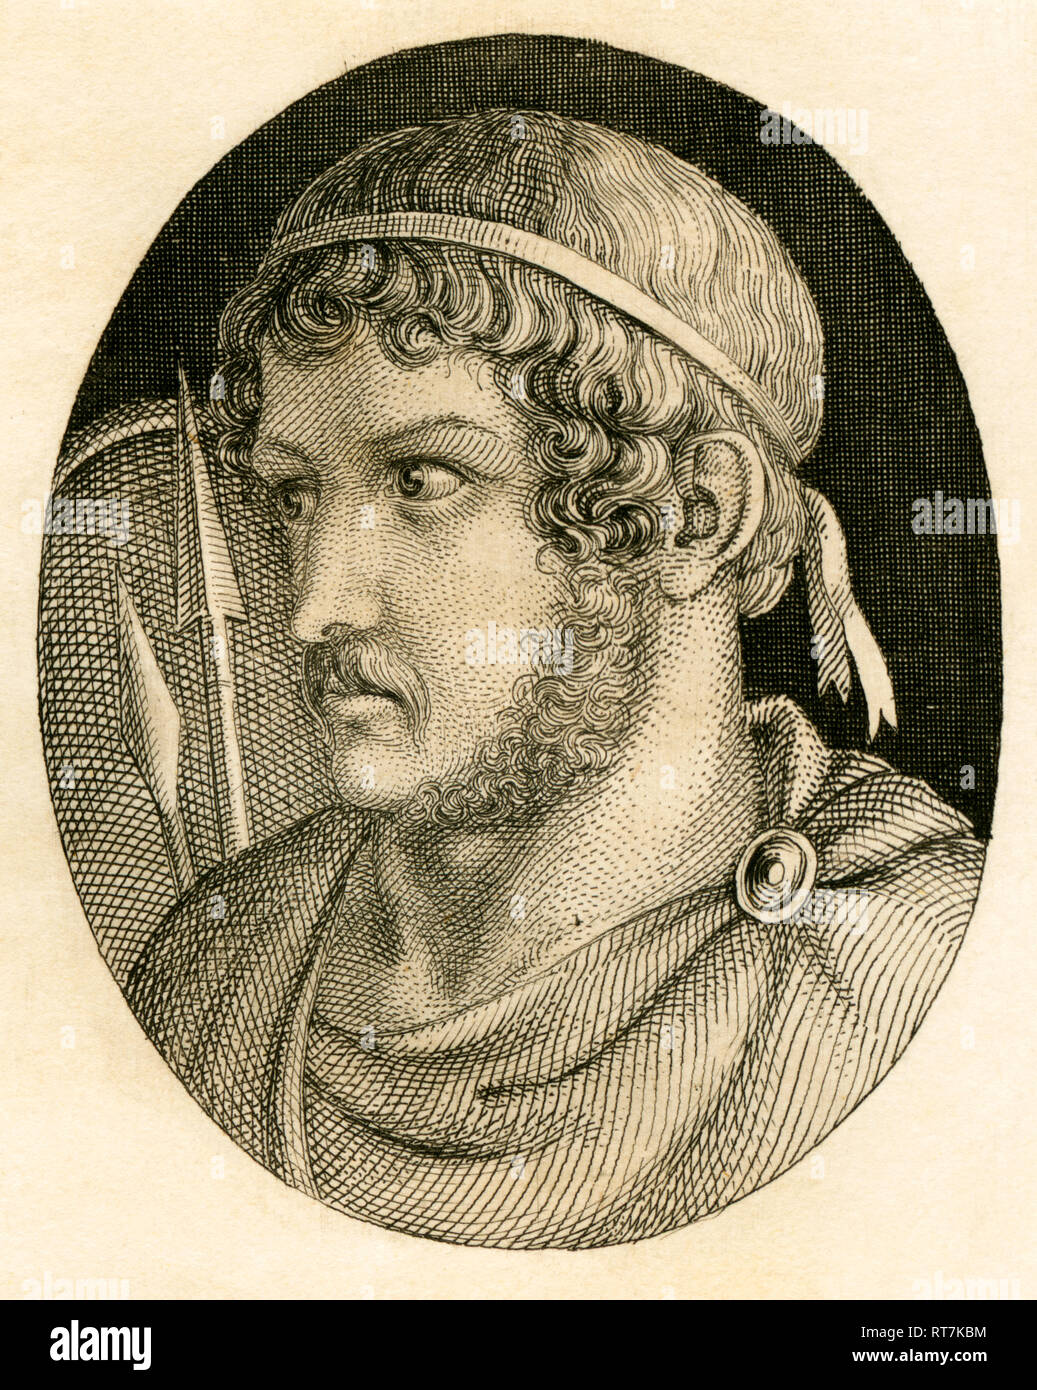 Gaius Marius, Roman general / strategist and statesman, copperplate engraving from Strahlheim, about 1840th., Artist's Copyright has not to be cleared - Stock Image